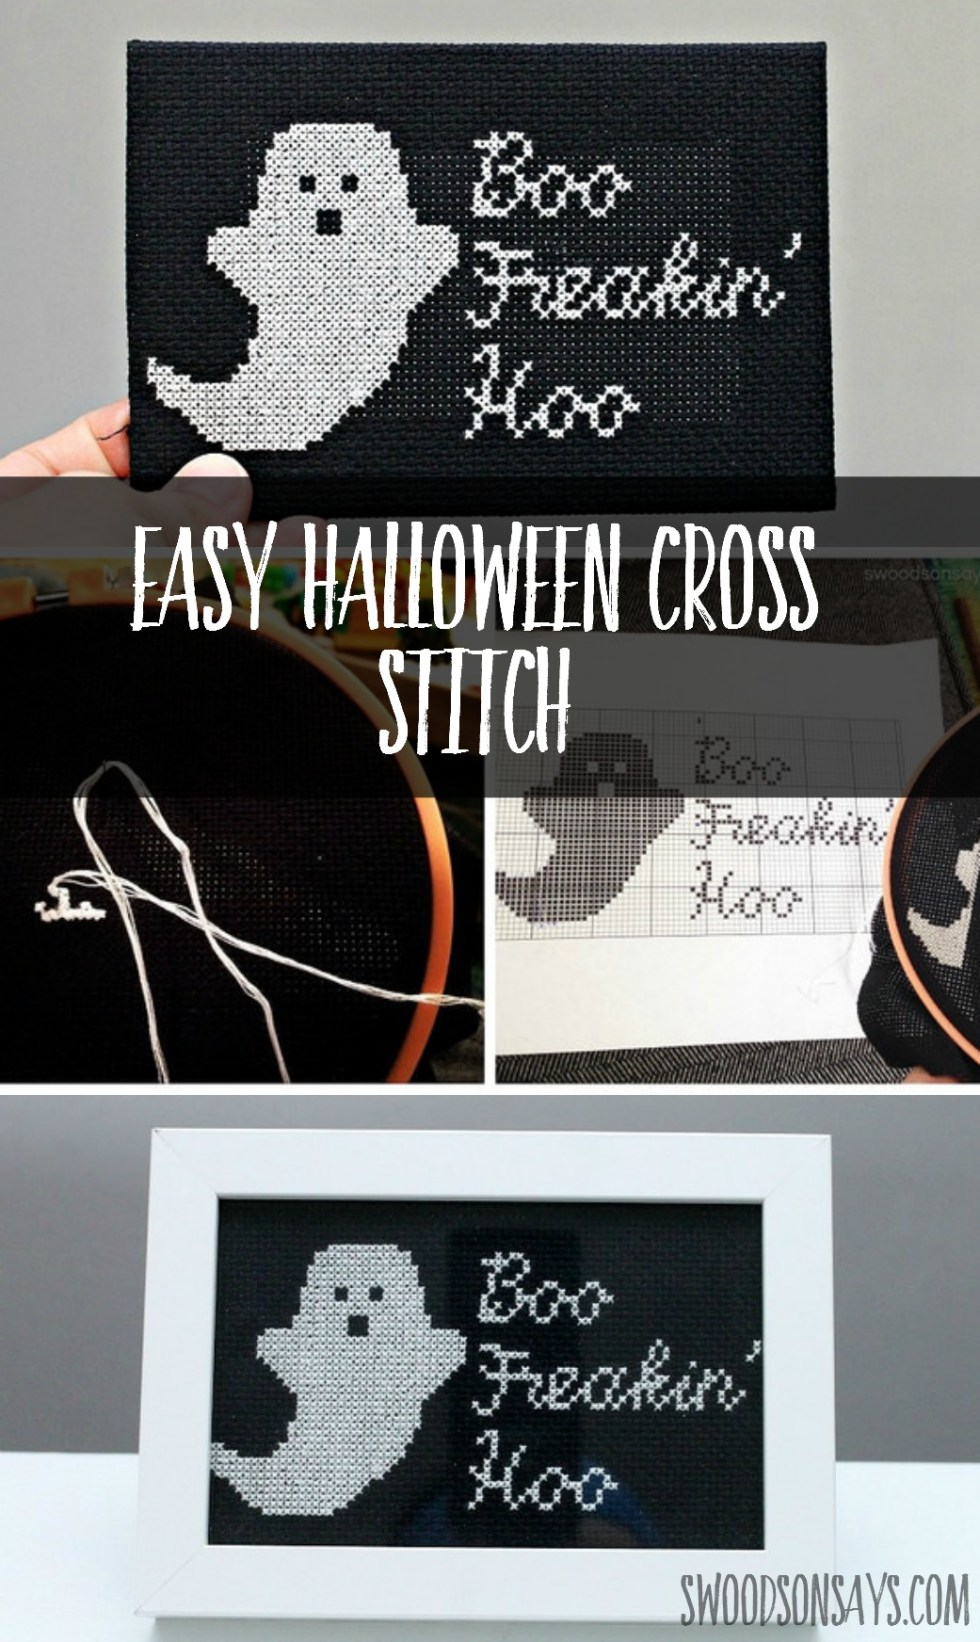 An easy halloween cross stitch pattern stitched up - a silly little snarky ghost! Fun adult craft for Halloween that makes for a cheap DIY Halloween decoration